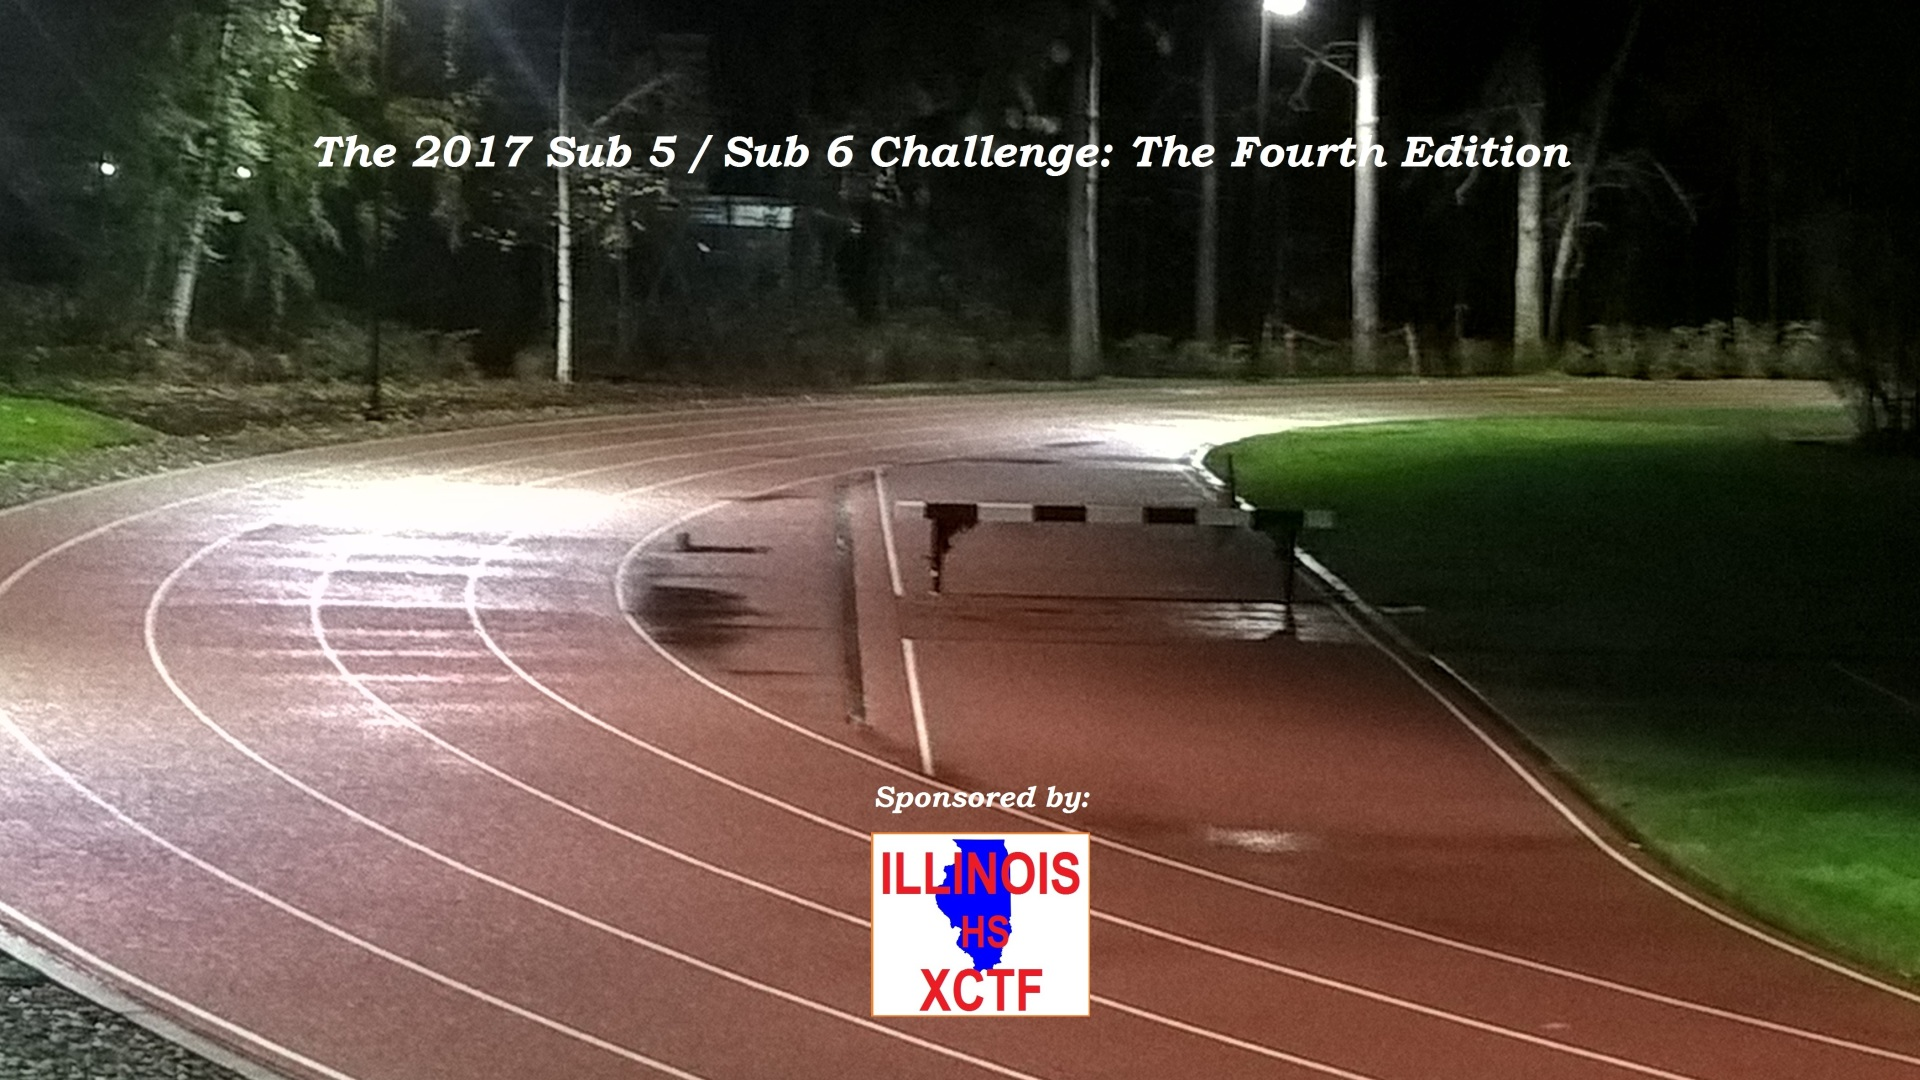 Sub 5 / Sub 6 Challenge back for fourth year